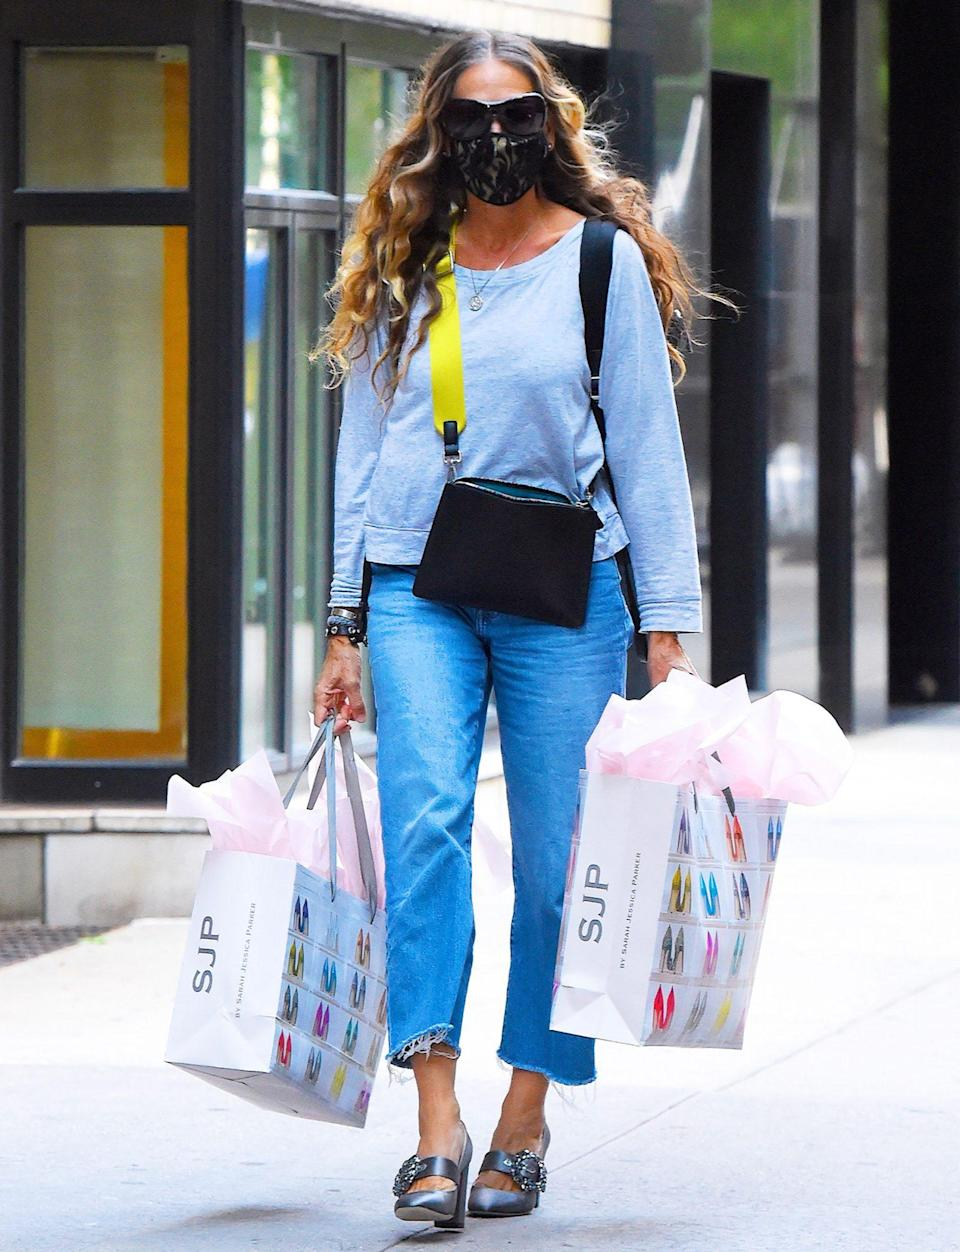 <p>Sarah Jessica Parker is spotted with bags full of her eponymous SJP merchandise on Wednesday in N.Y.C.</p>